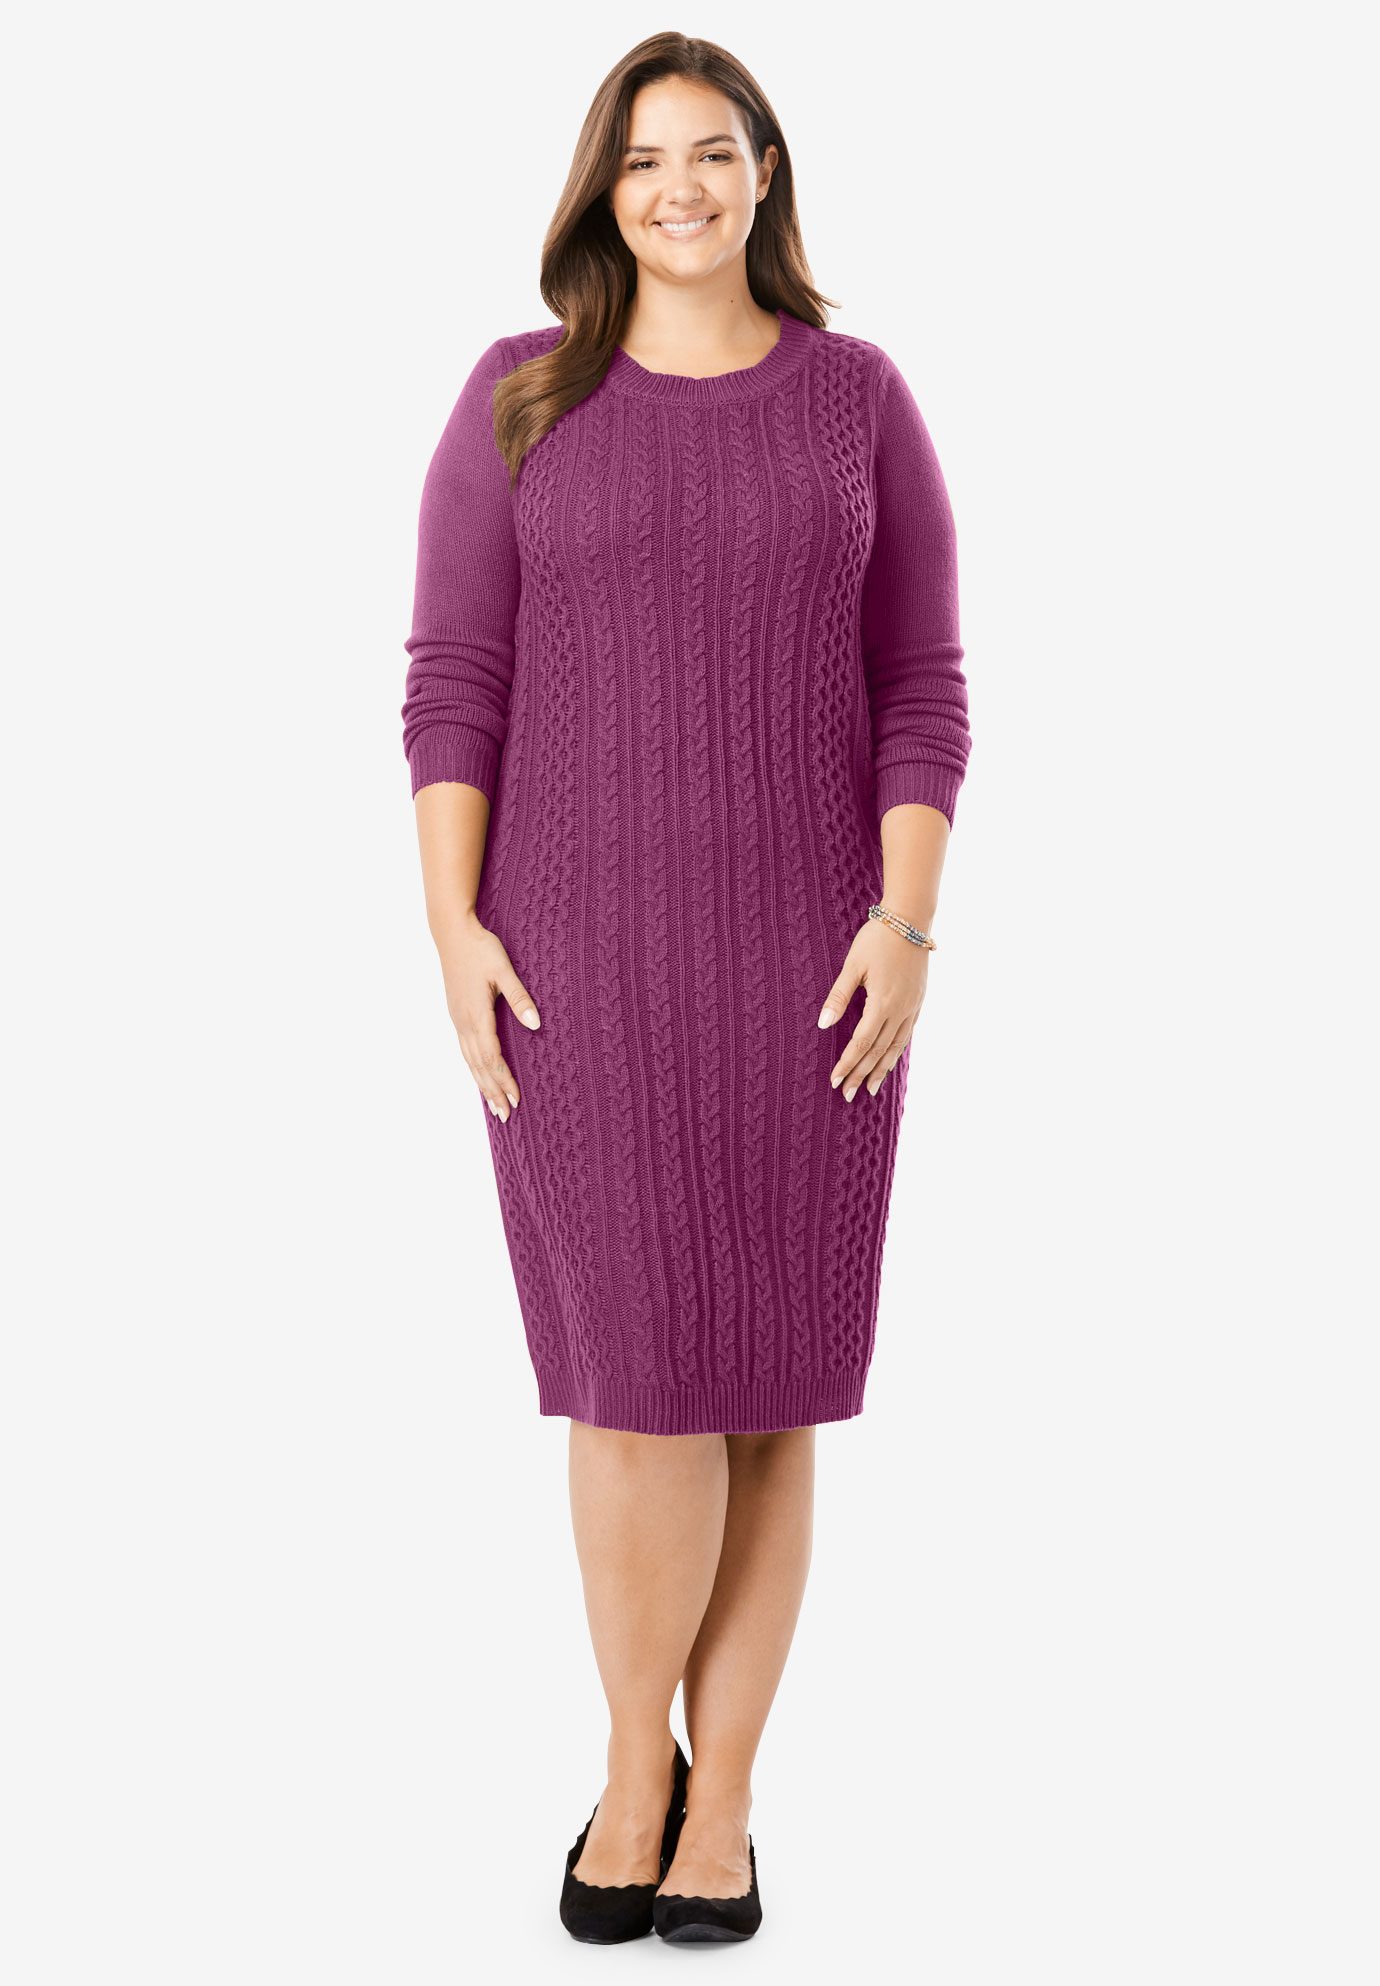 Cableknit Sweaterdress,